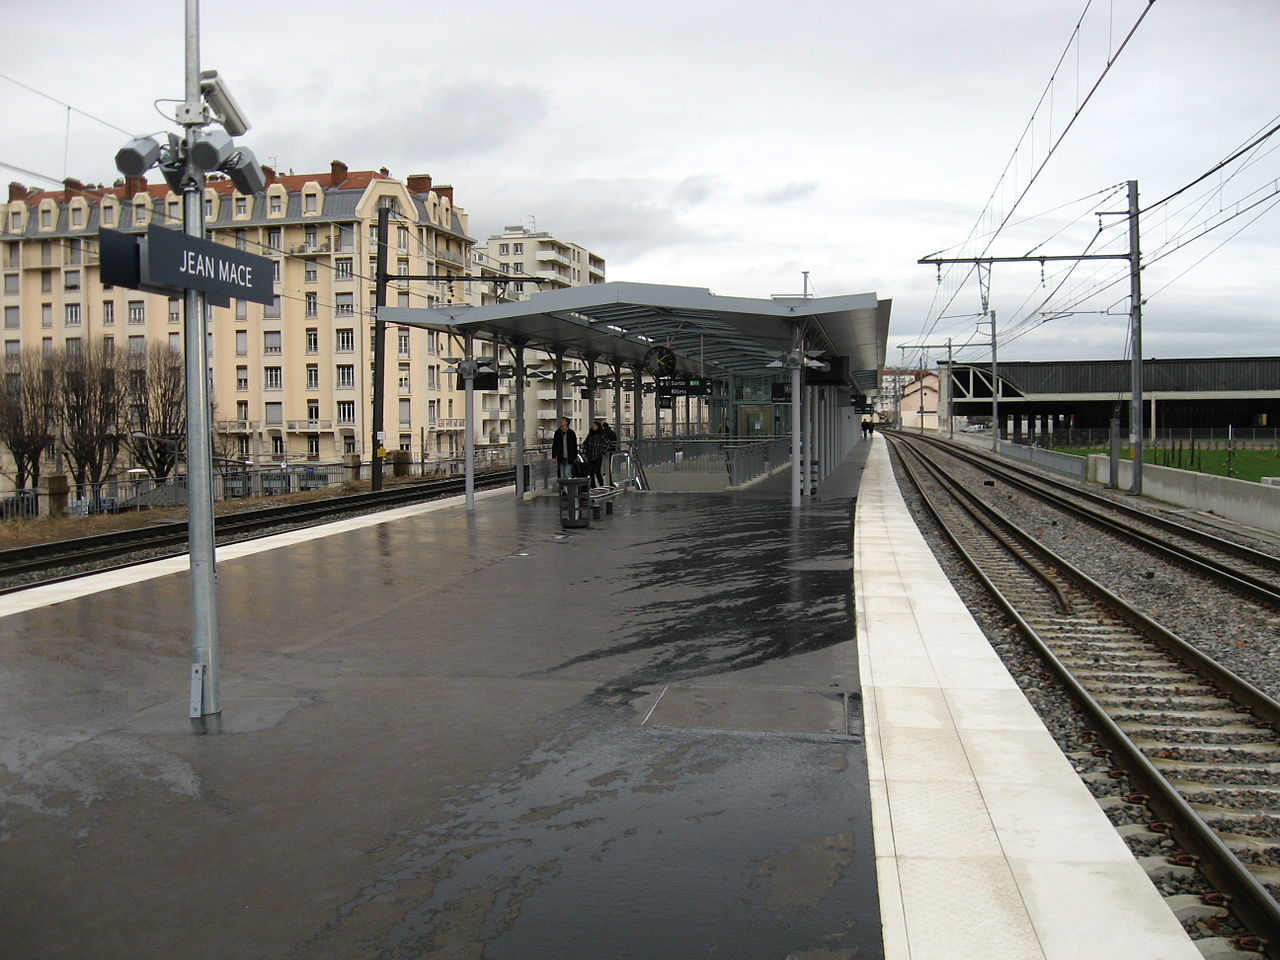 Lyon-Jean-Mace-train-station